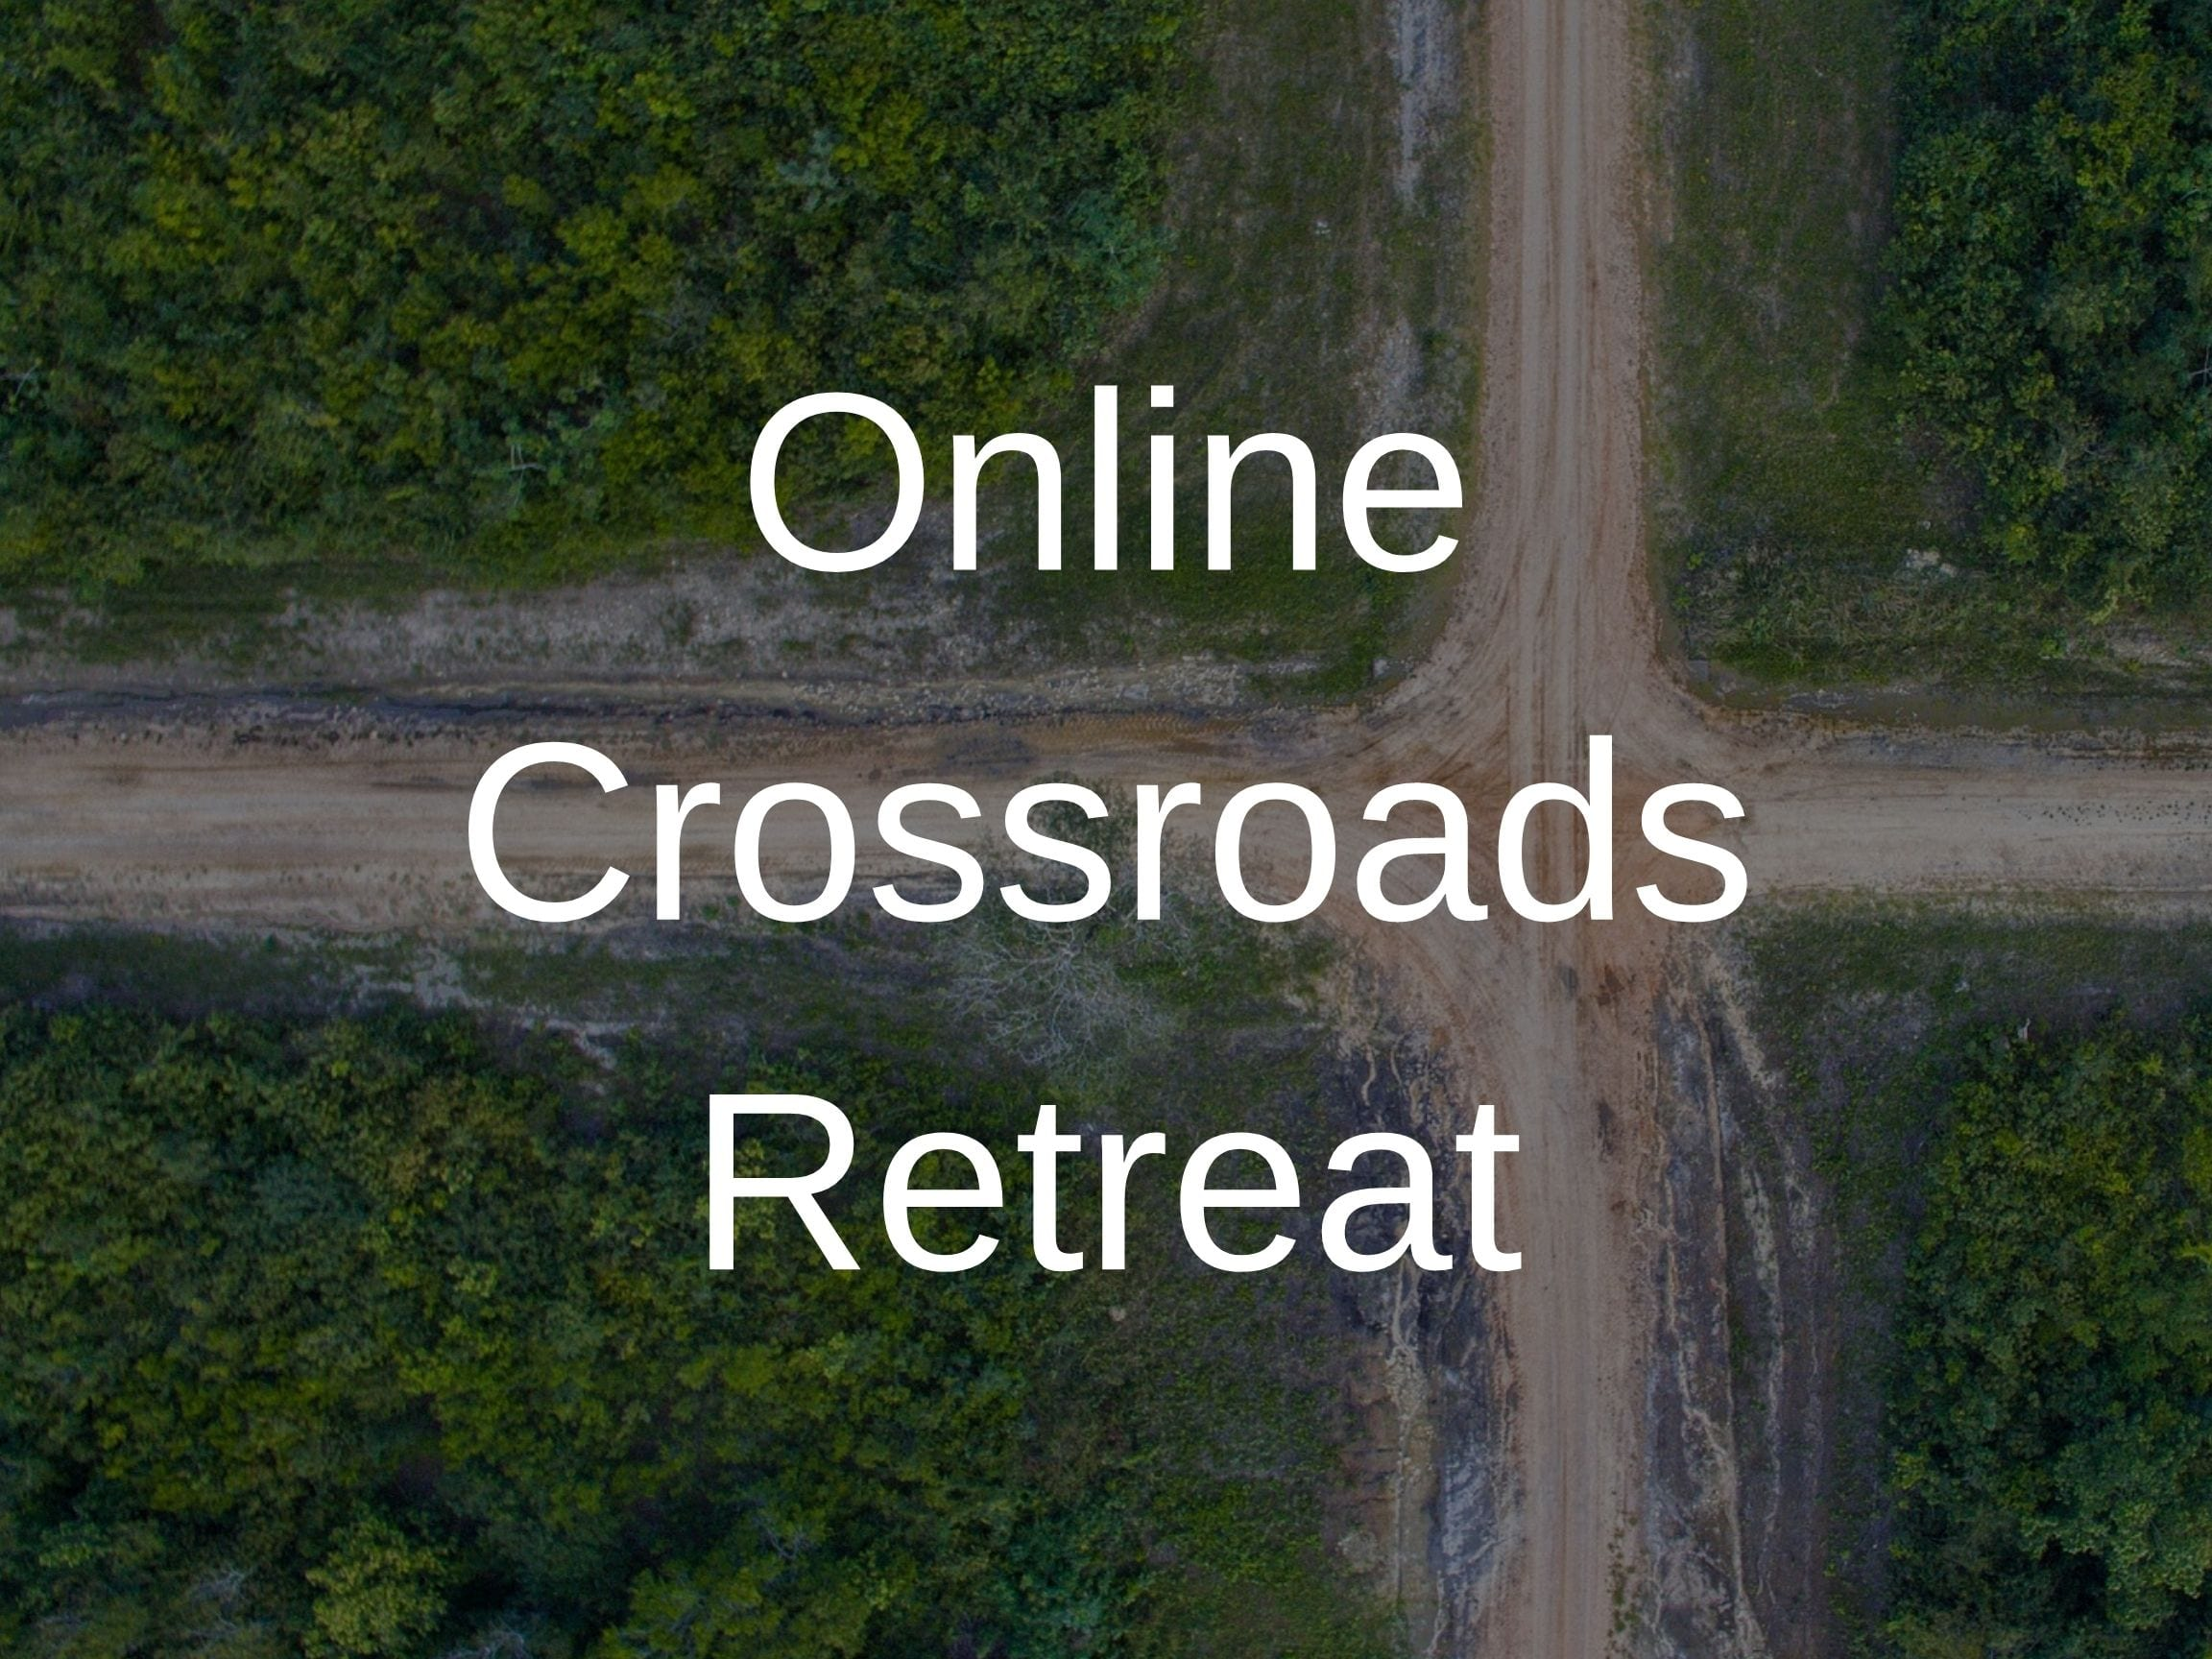 Online Crossroads Retreat